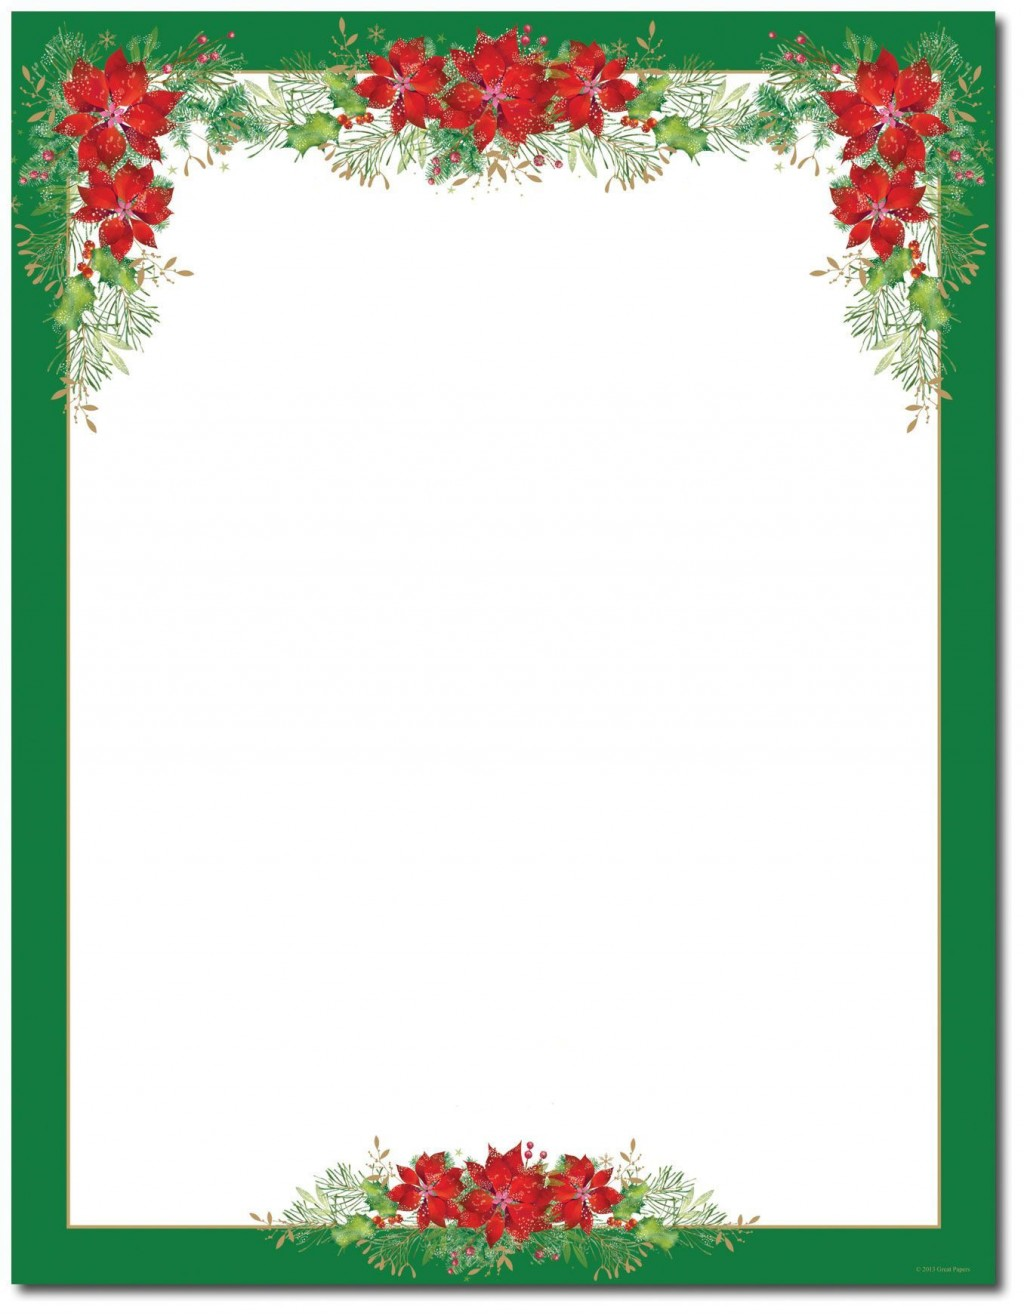 007 Wondrou Free Holiday Stationery Template For Word Image Large